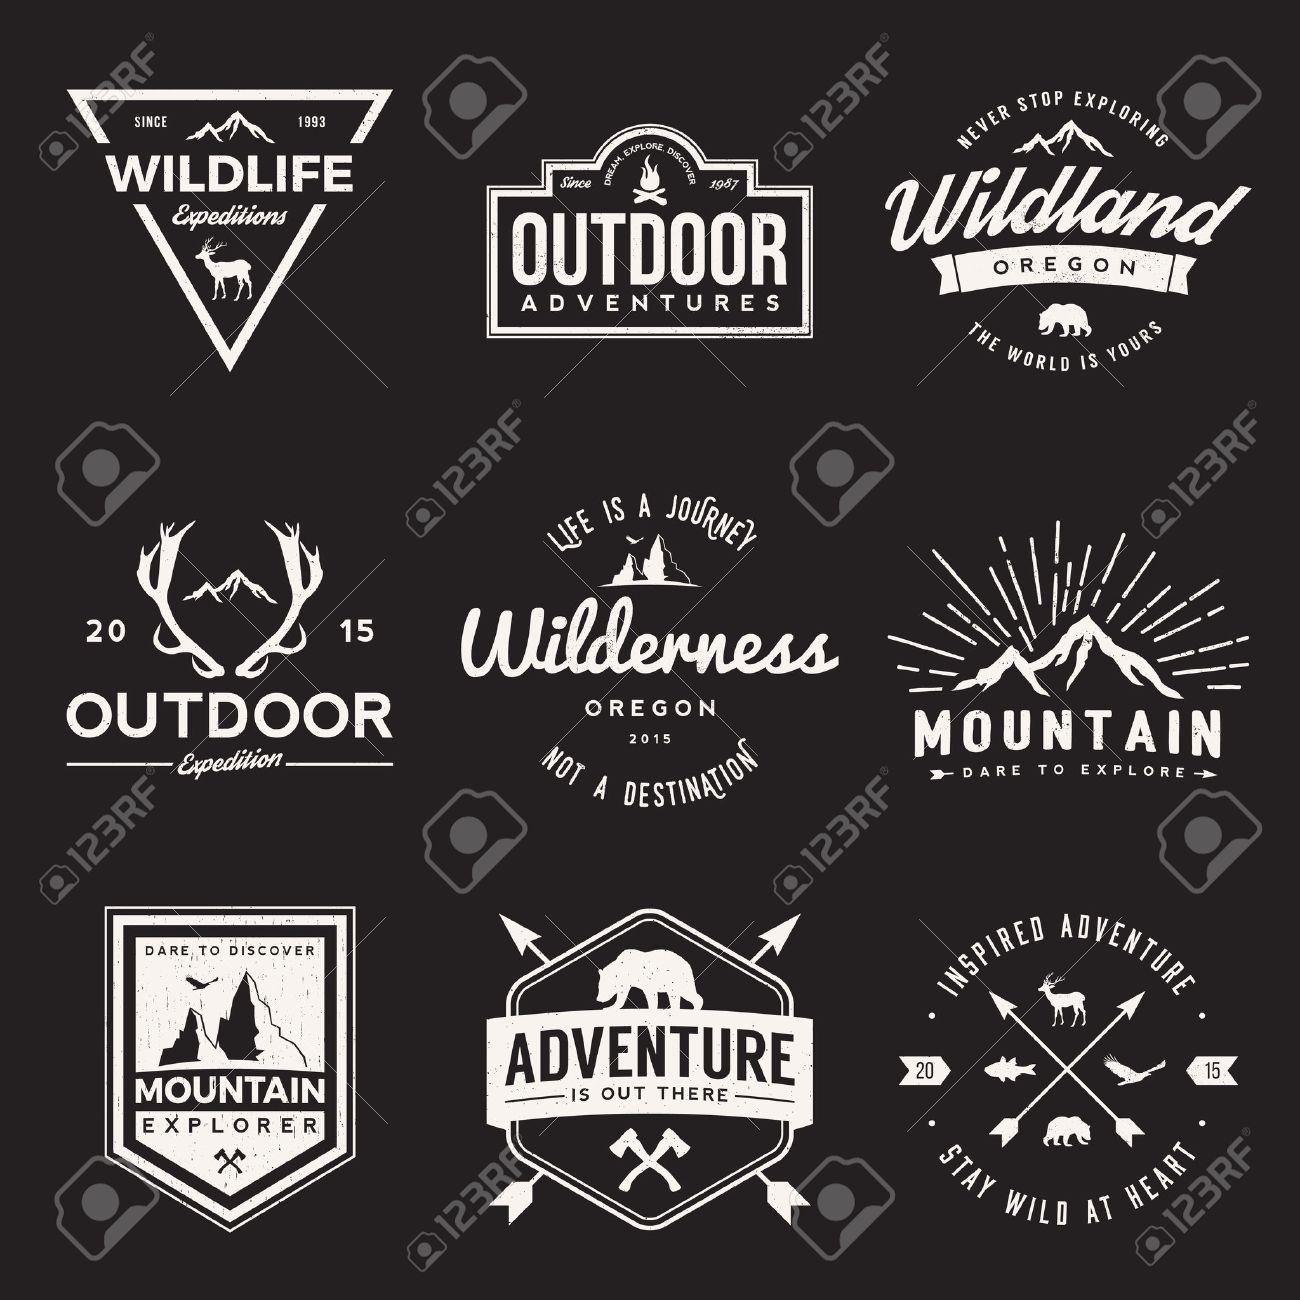 vector set of wilderness and nature exploration vintage logos, emblems, silhouettes and design elements. outdoor activity symbols with grunge textures - 42861968